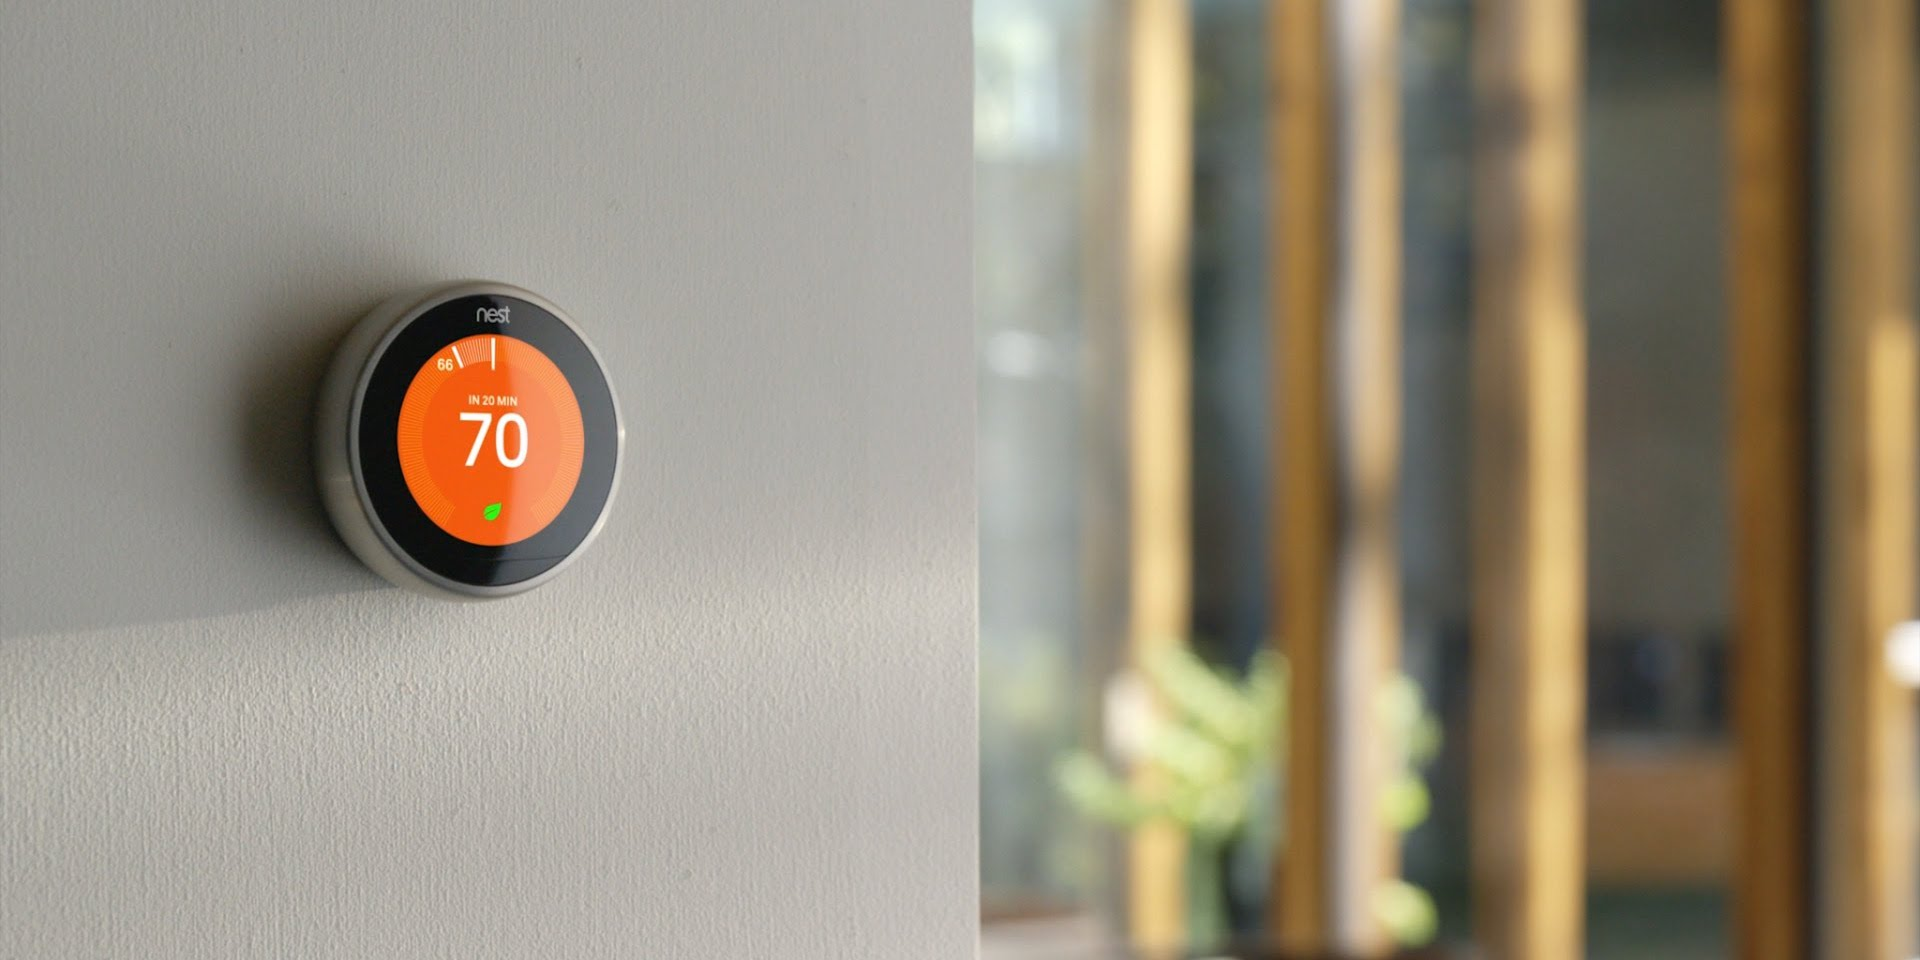 Use your voice to command the A/C w/ Nest's 3rd Gen. Smart Thermostat for $171 (Reg. $225+)